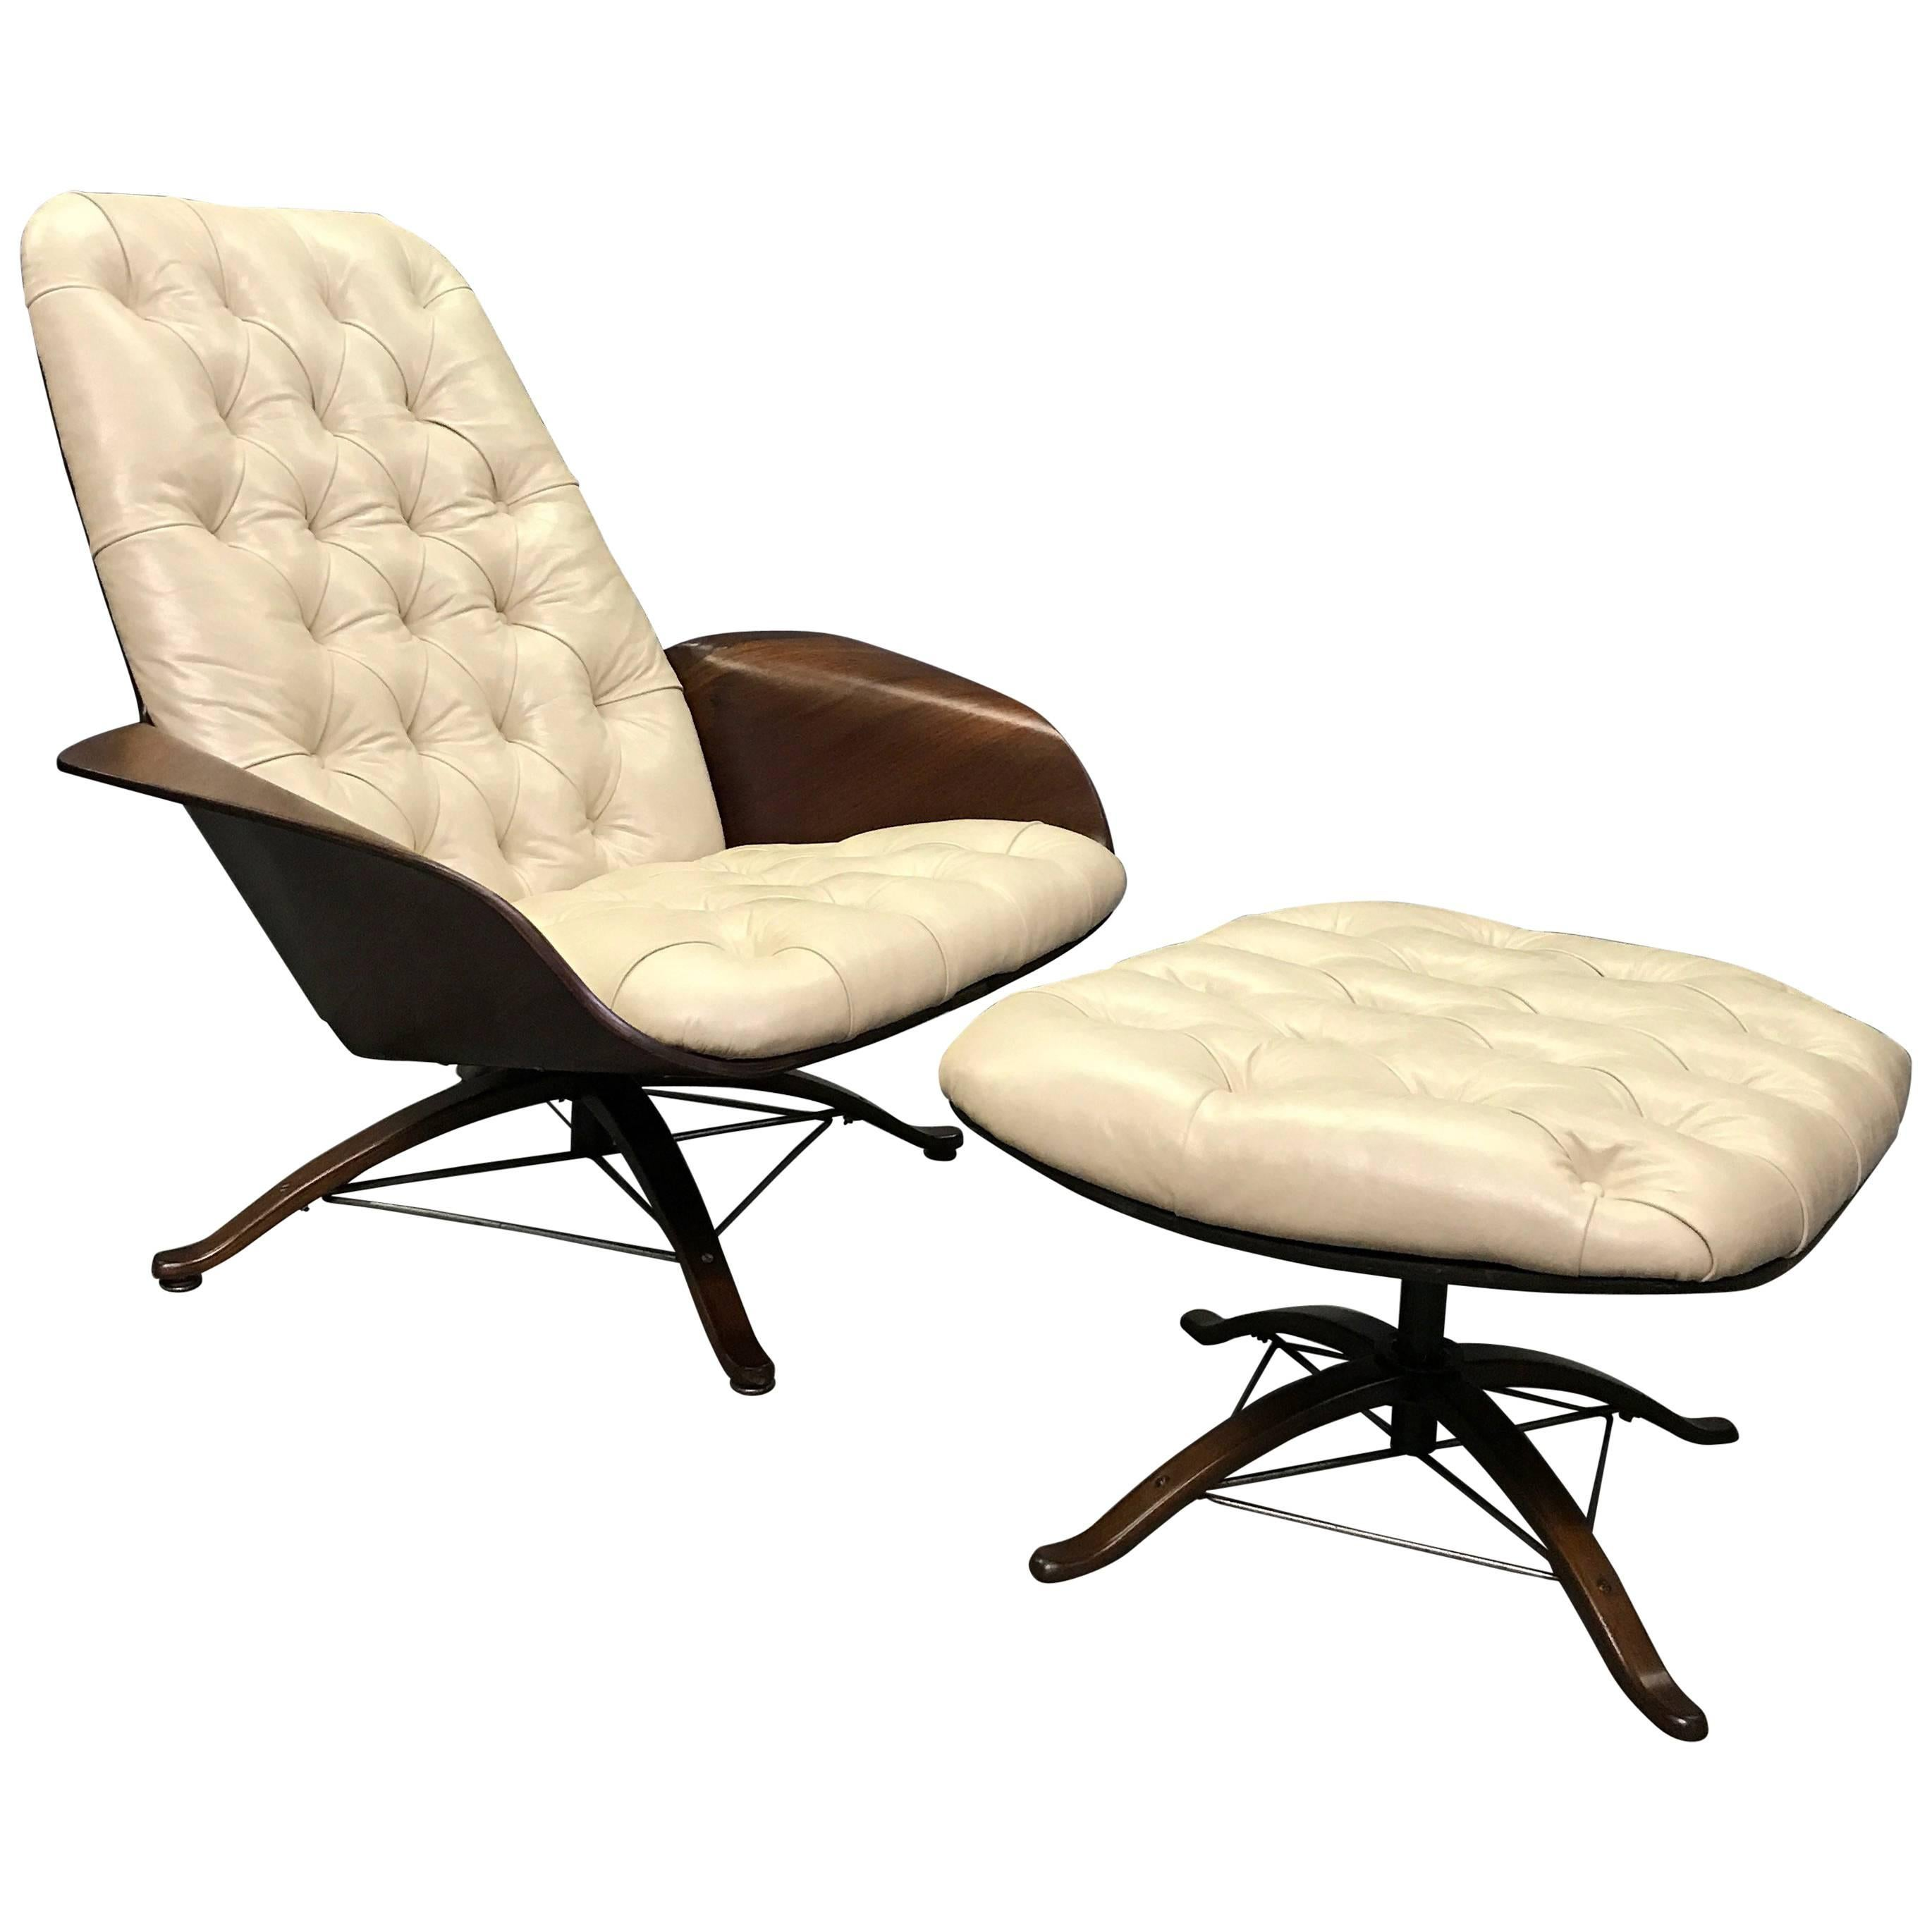 mr chair lounge chair and ottoman by george mulhauser for plycraft